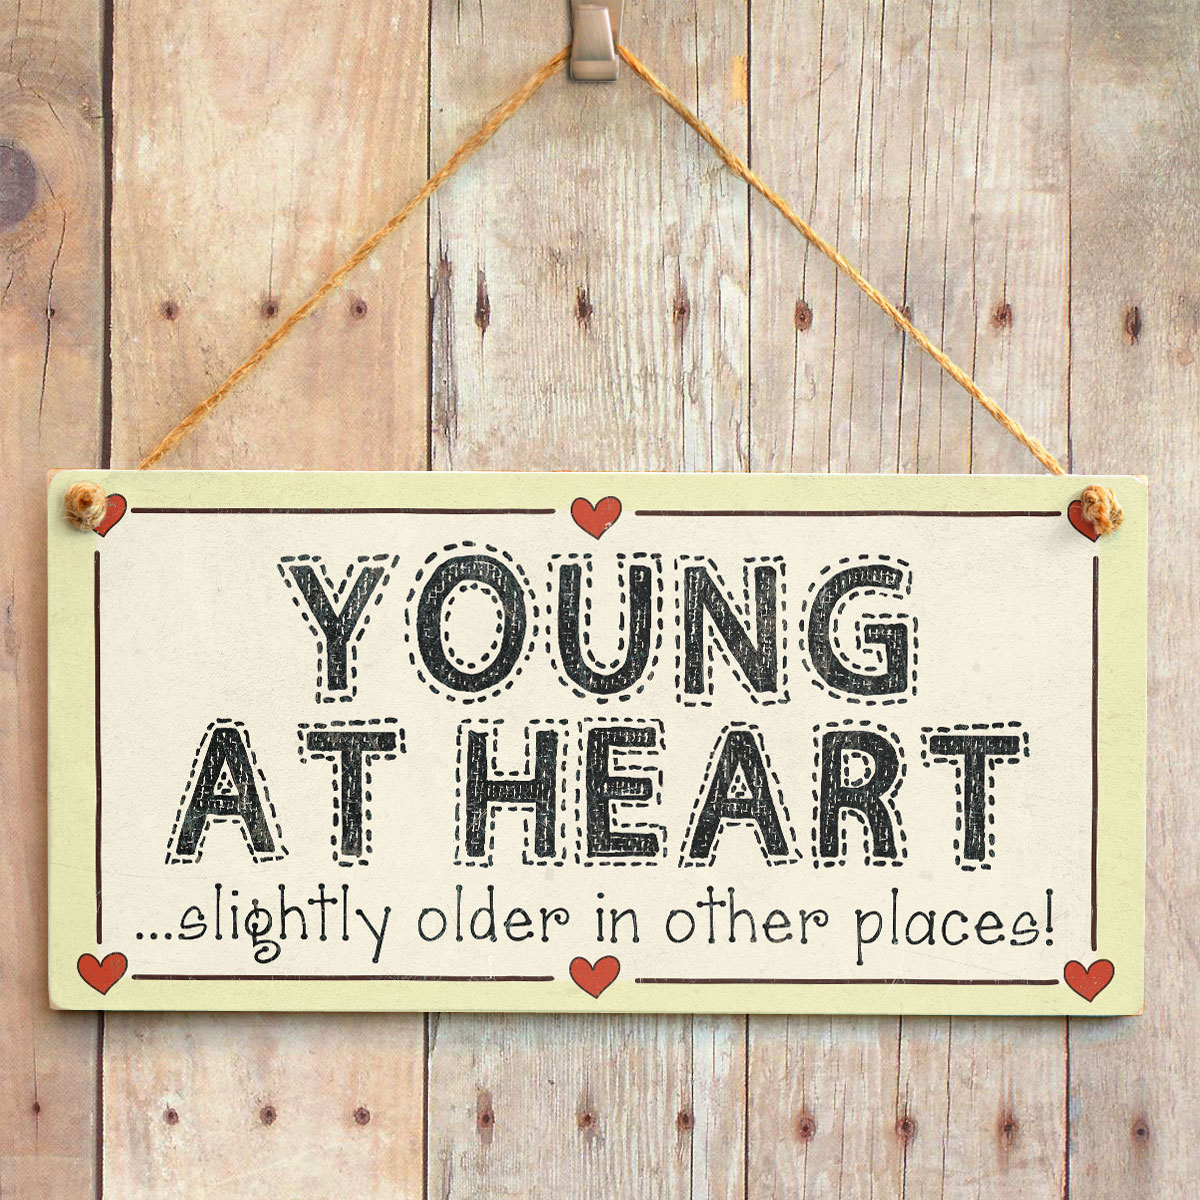 Young At Heart Slightly Older In Other Places!